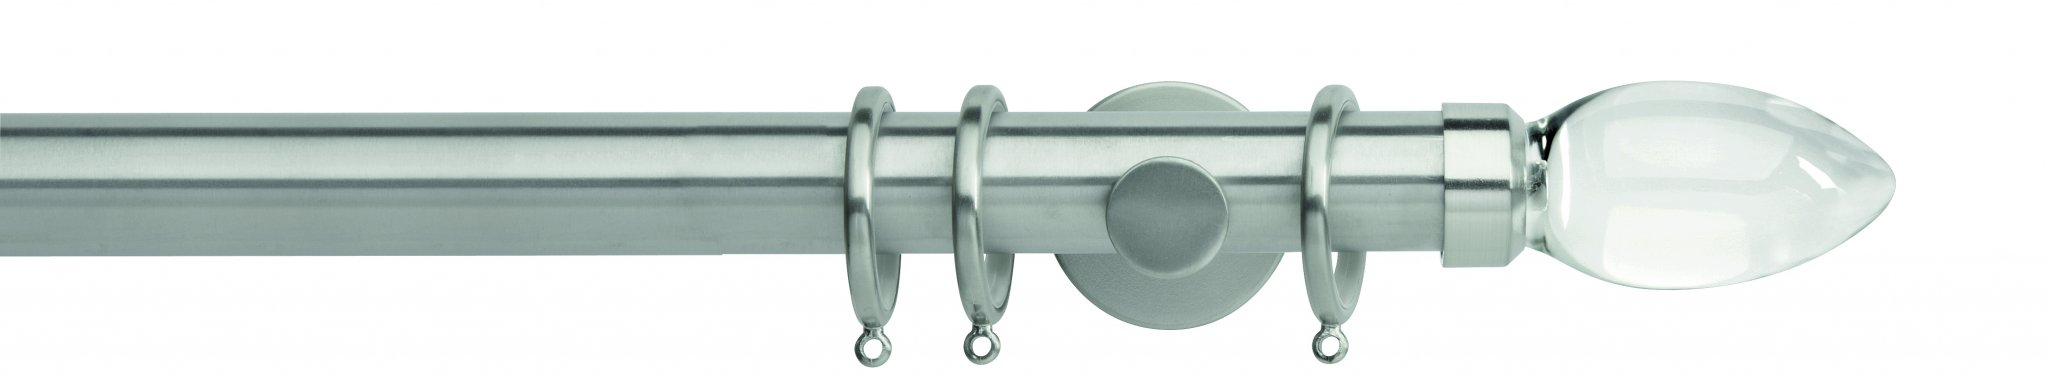 Rolls Neo Metal Curtain Pole 35mm Clear Teardrop